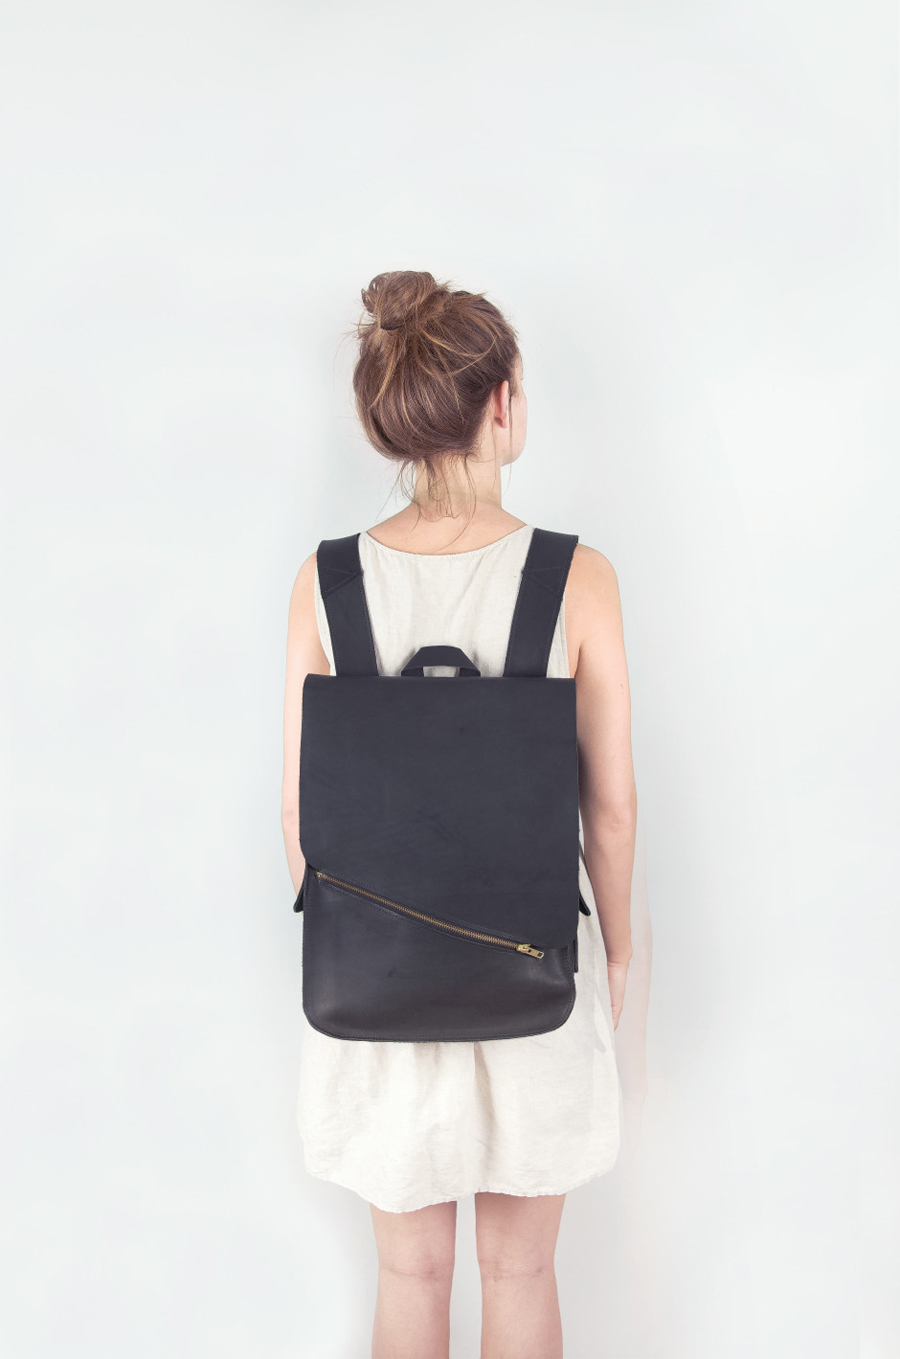 Women-Bags-Backpack-940x1419